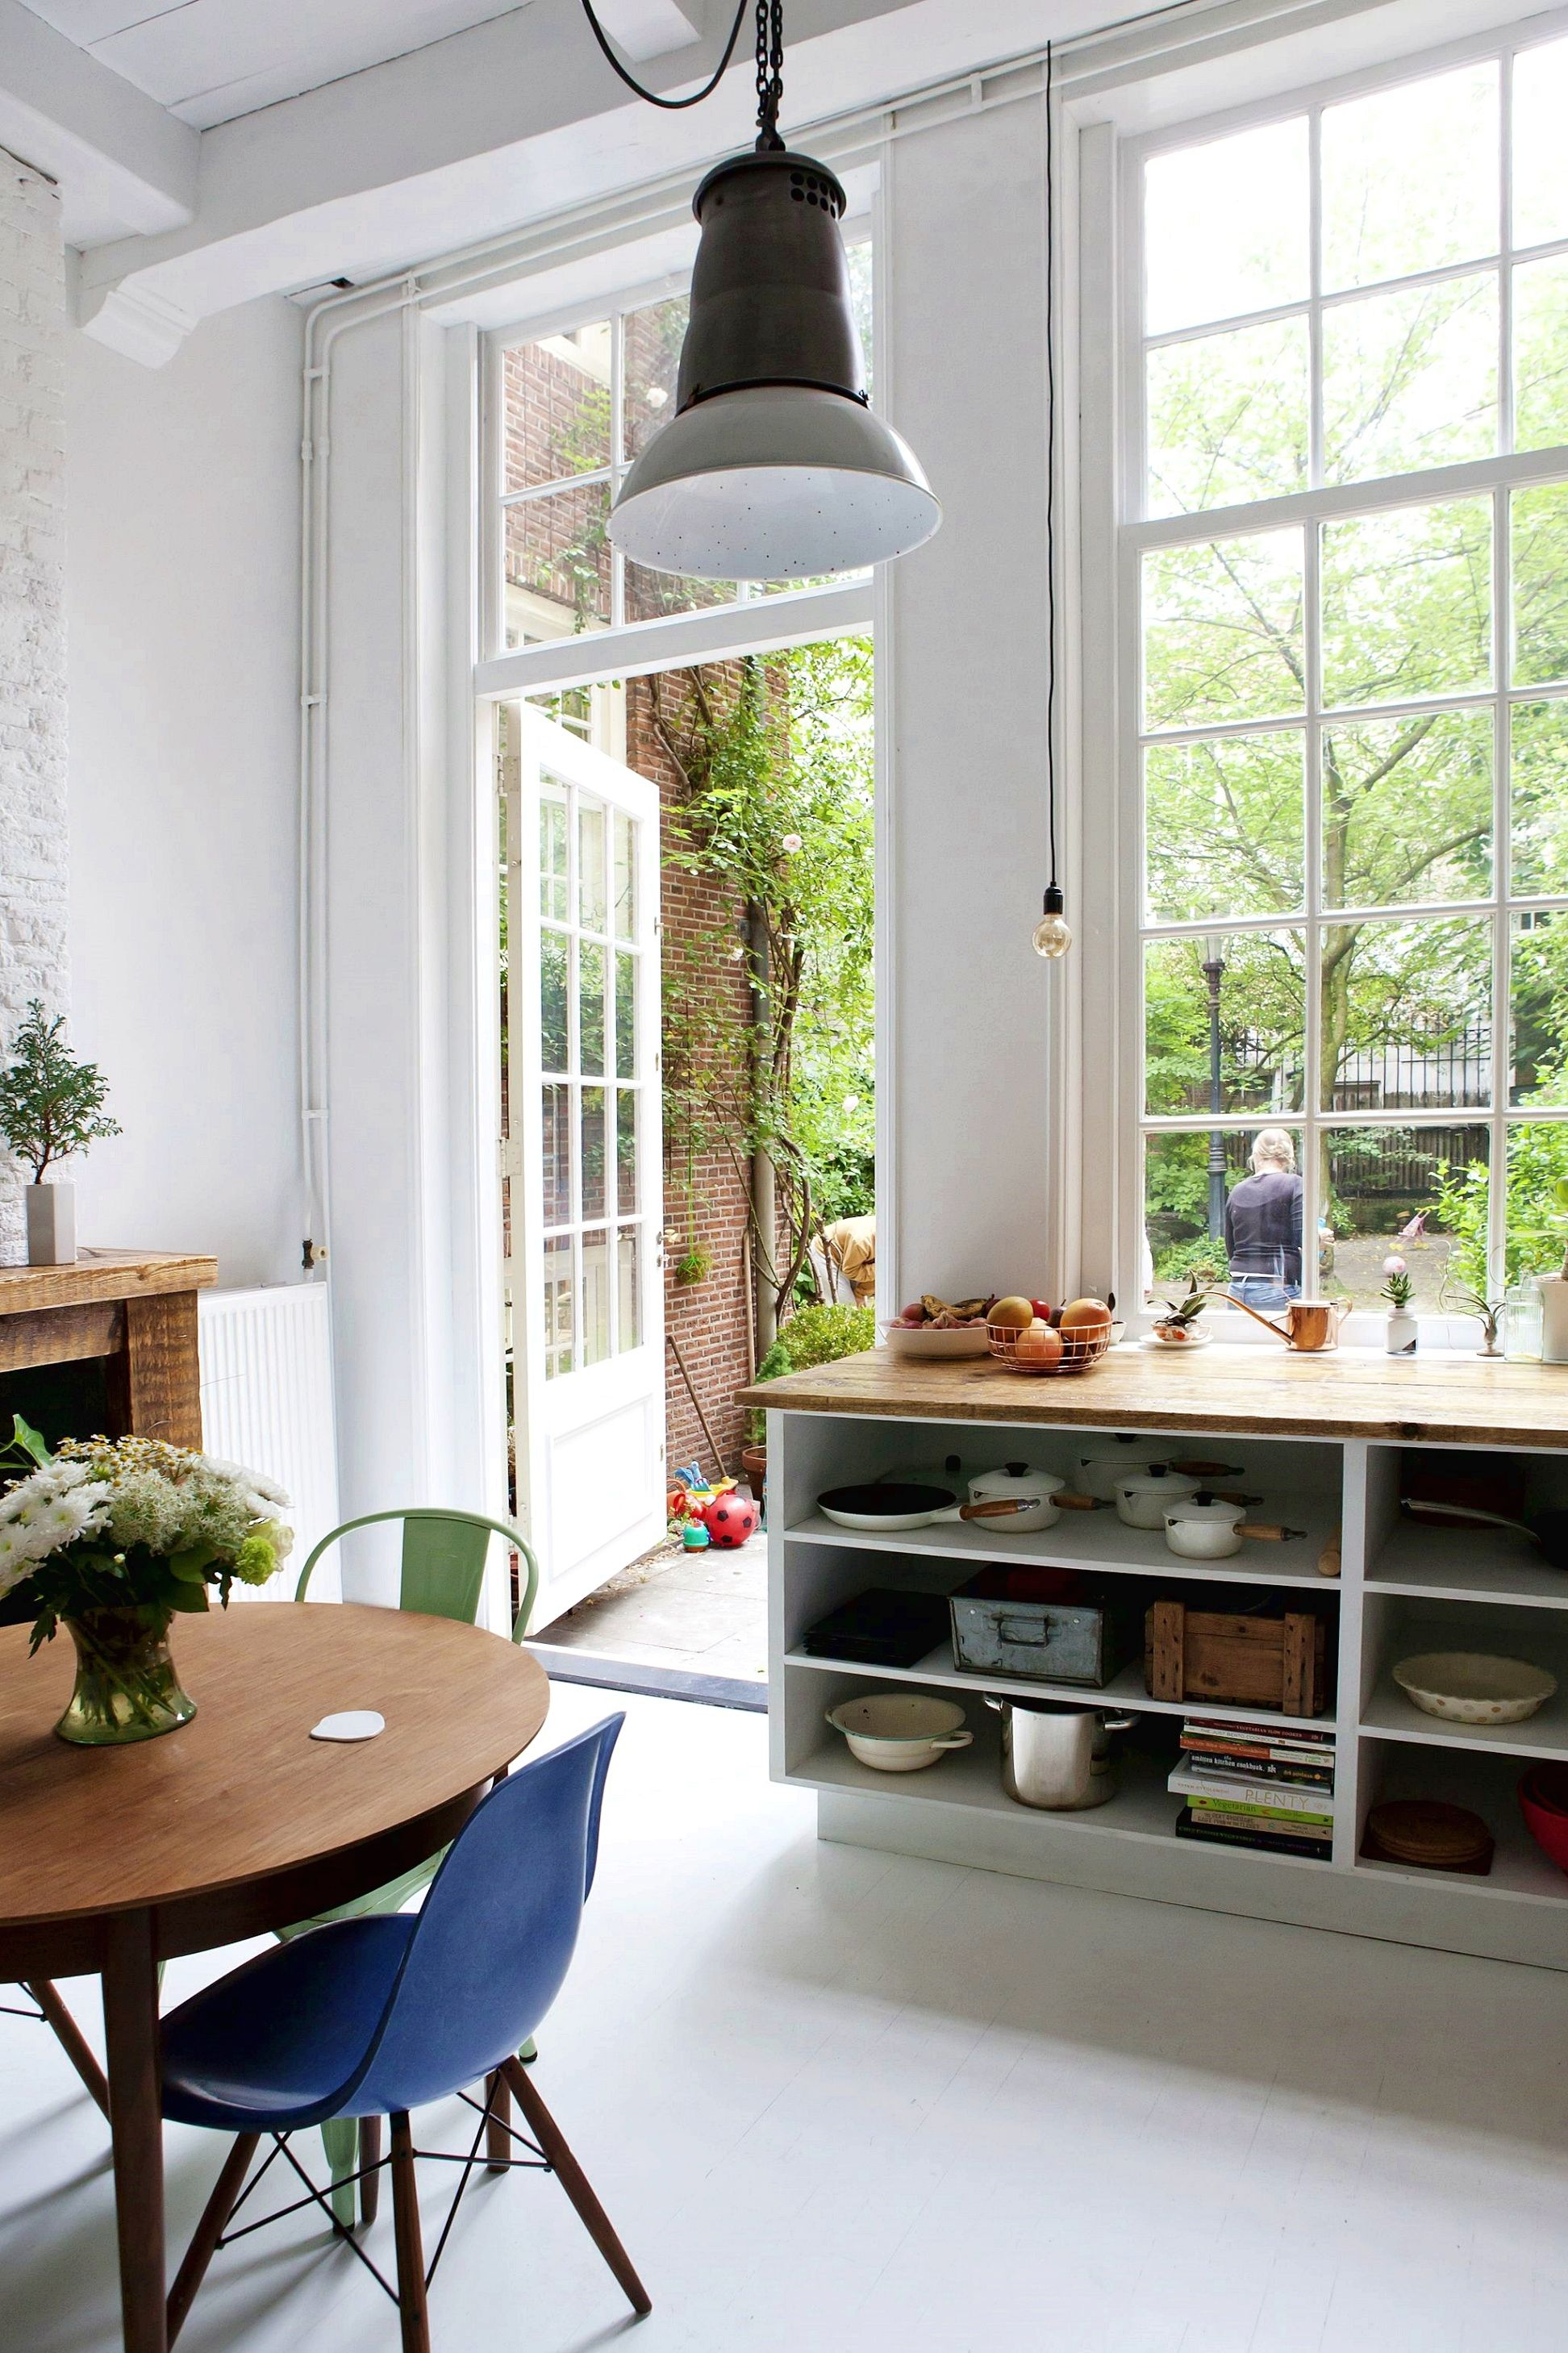 Kitchen remodel guide check out these easy home interior